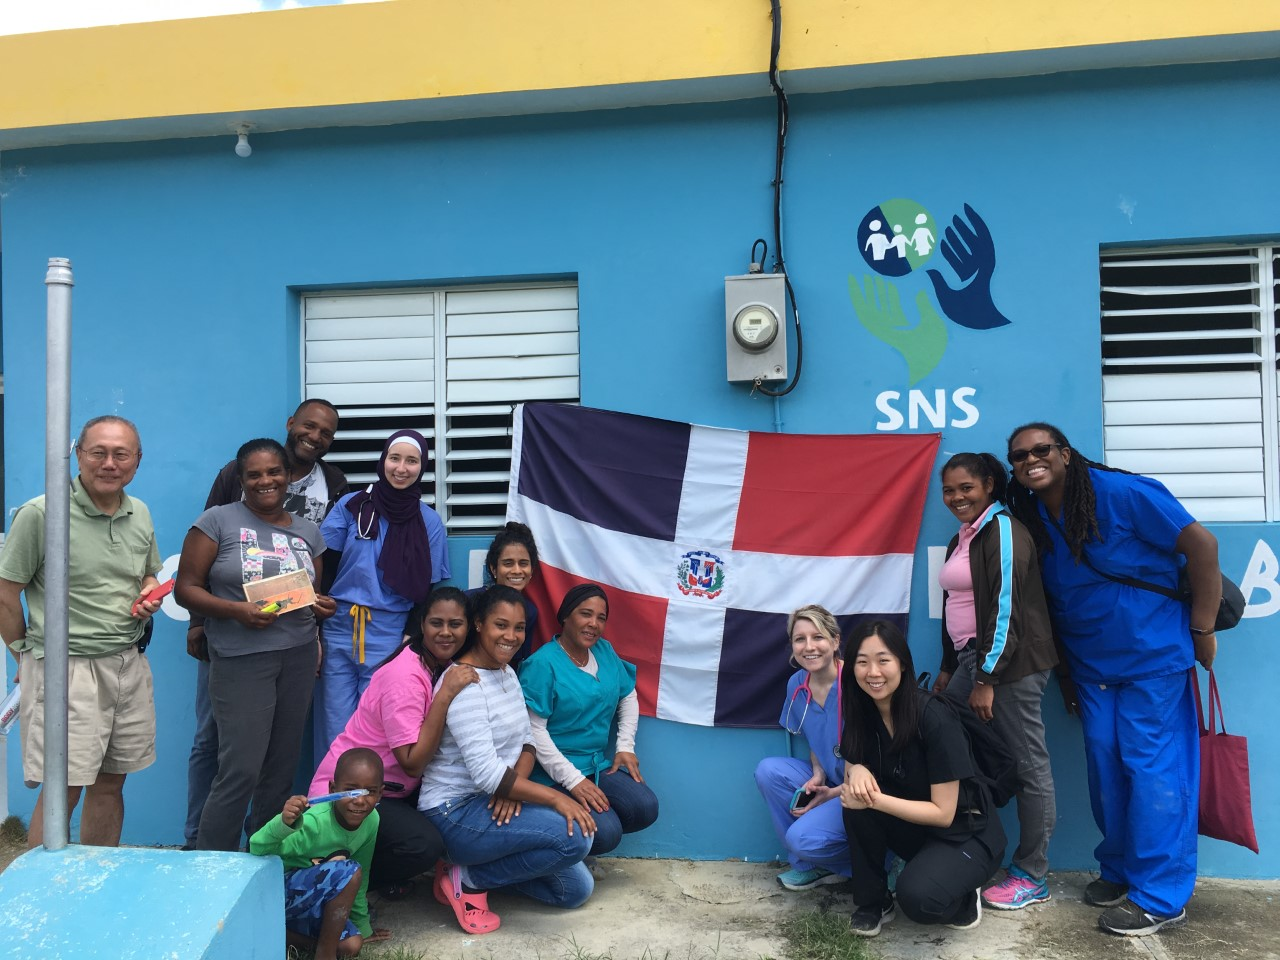 Medical students in Dominican Republic outside of clinic